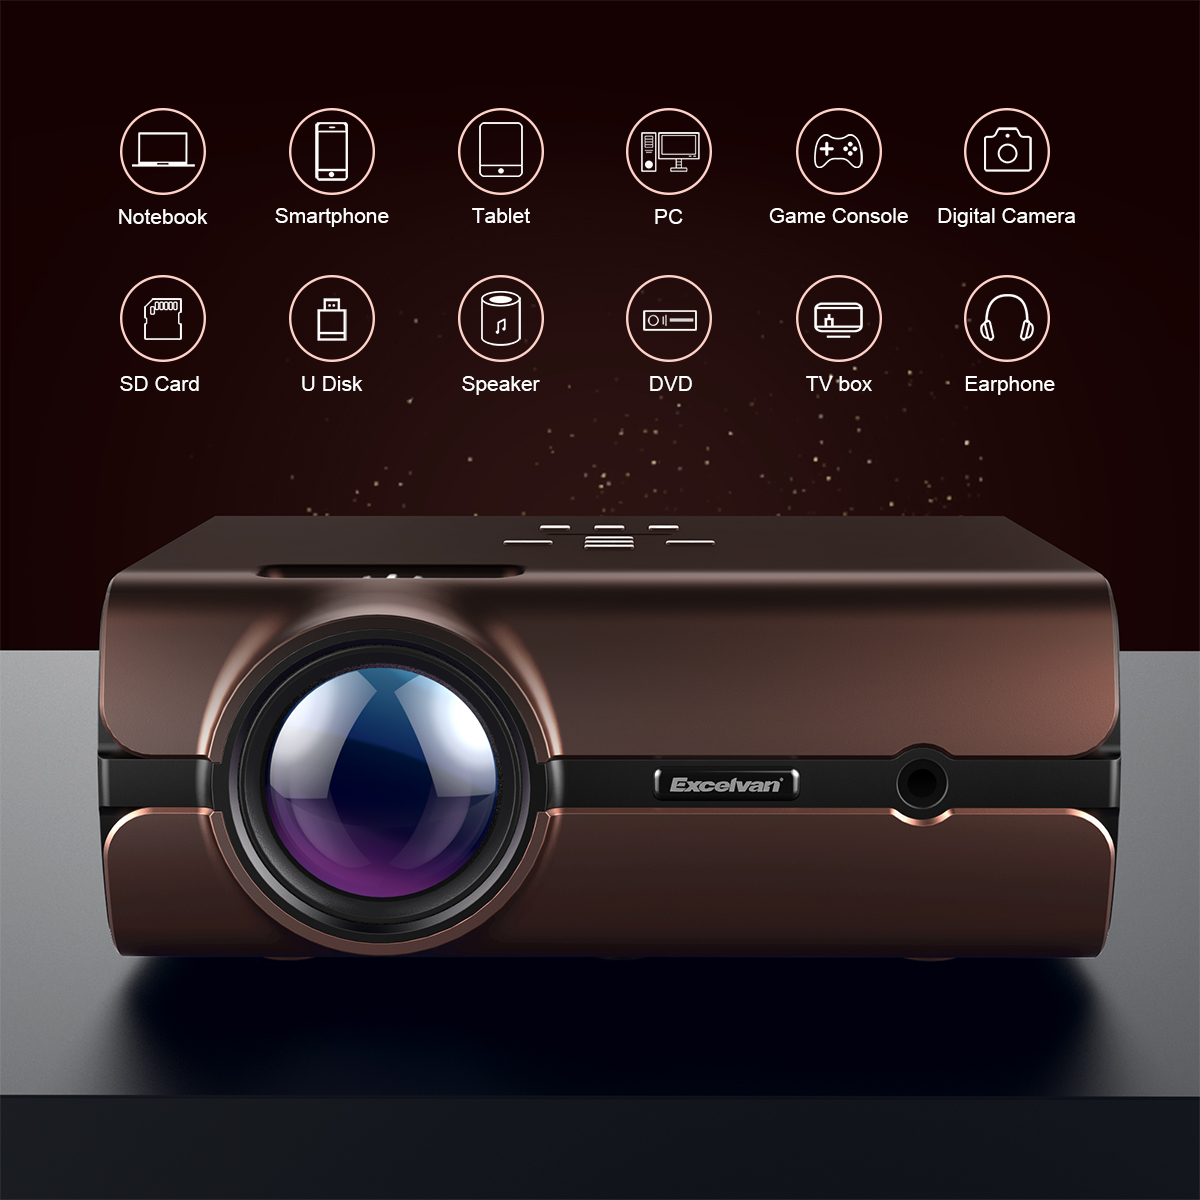 Excelvan BL46 Android 6.0 Multimedia LCD Projector 1G RAM 8G ROM Support Bluetooth 4.0 1080P Wireless Connection With Smartphone Tablet Many Interfaces USB VGA SD HDMI For PC Laptop Game Console DVD